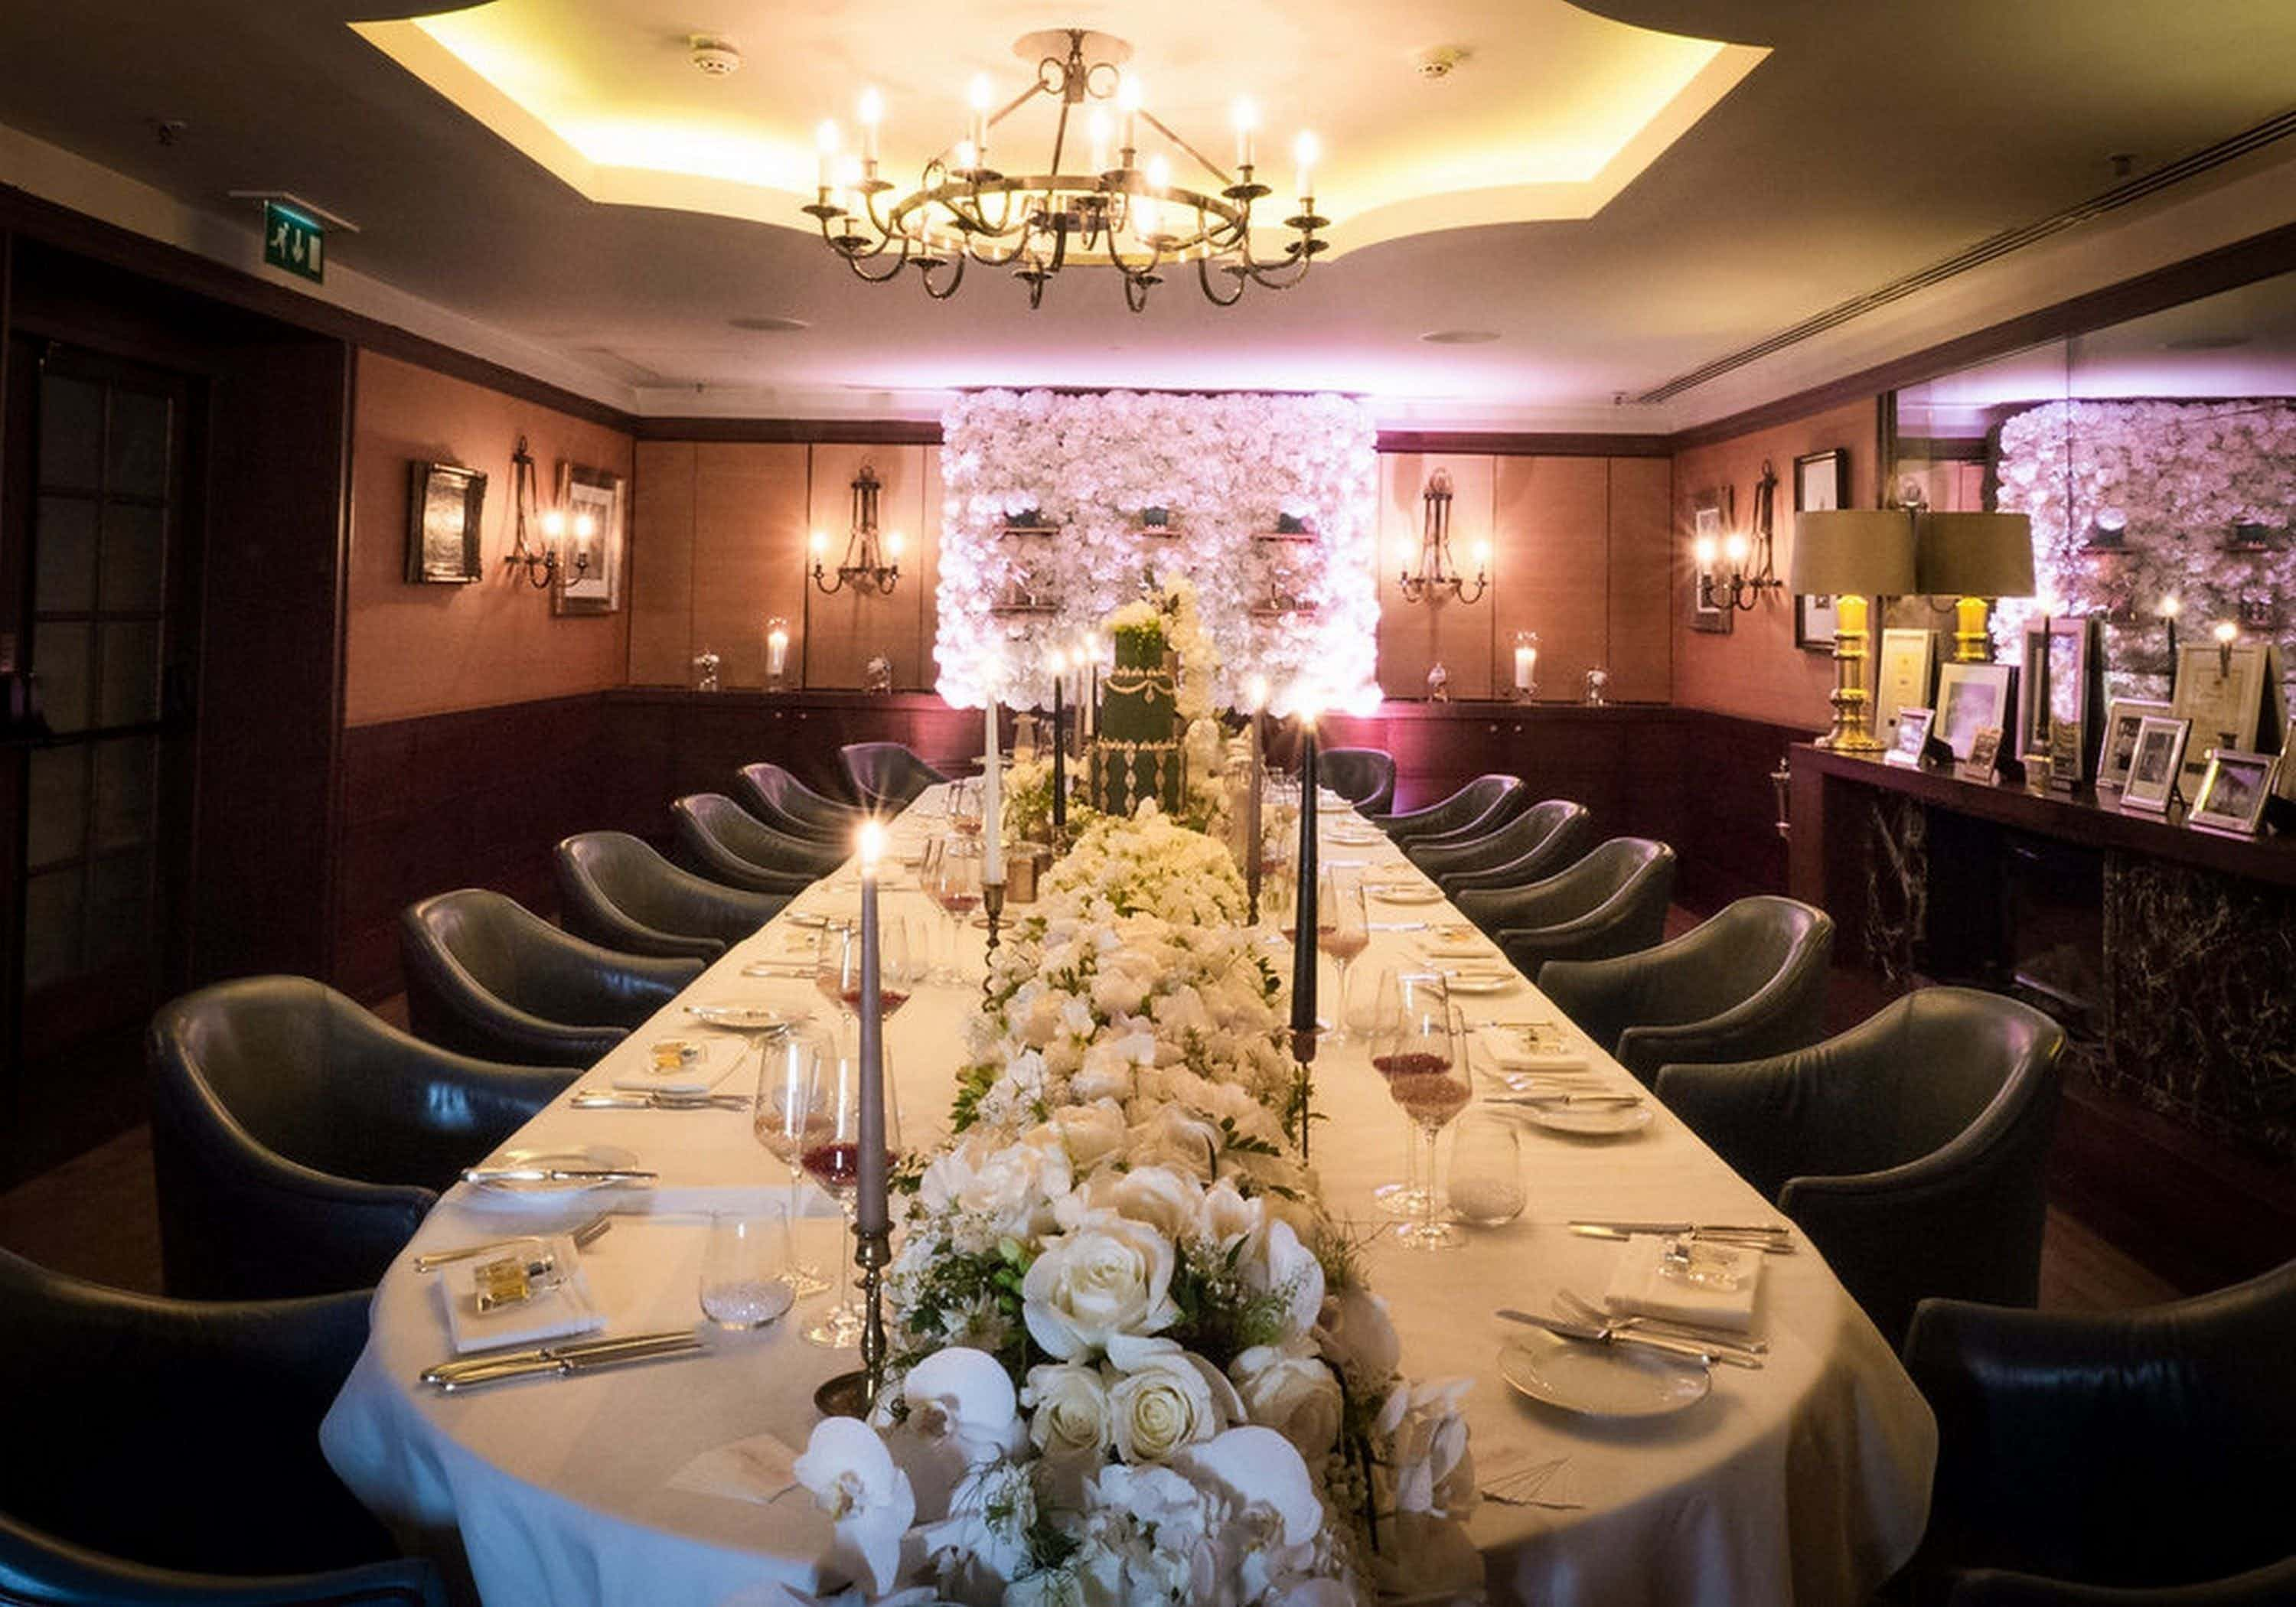 Lindsay Room, Corrigan's Mayfair